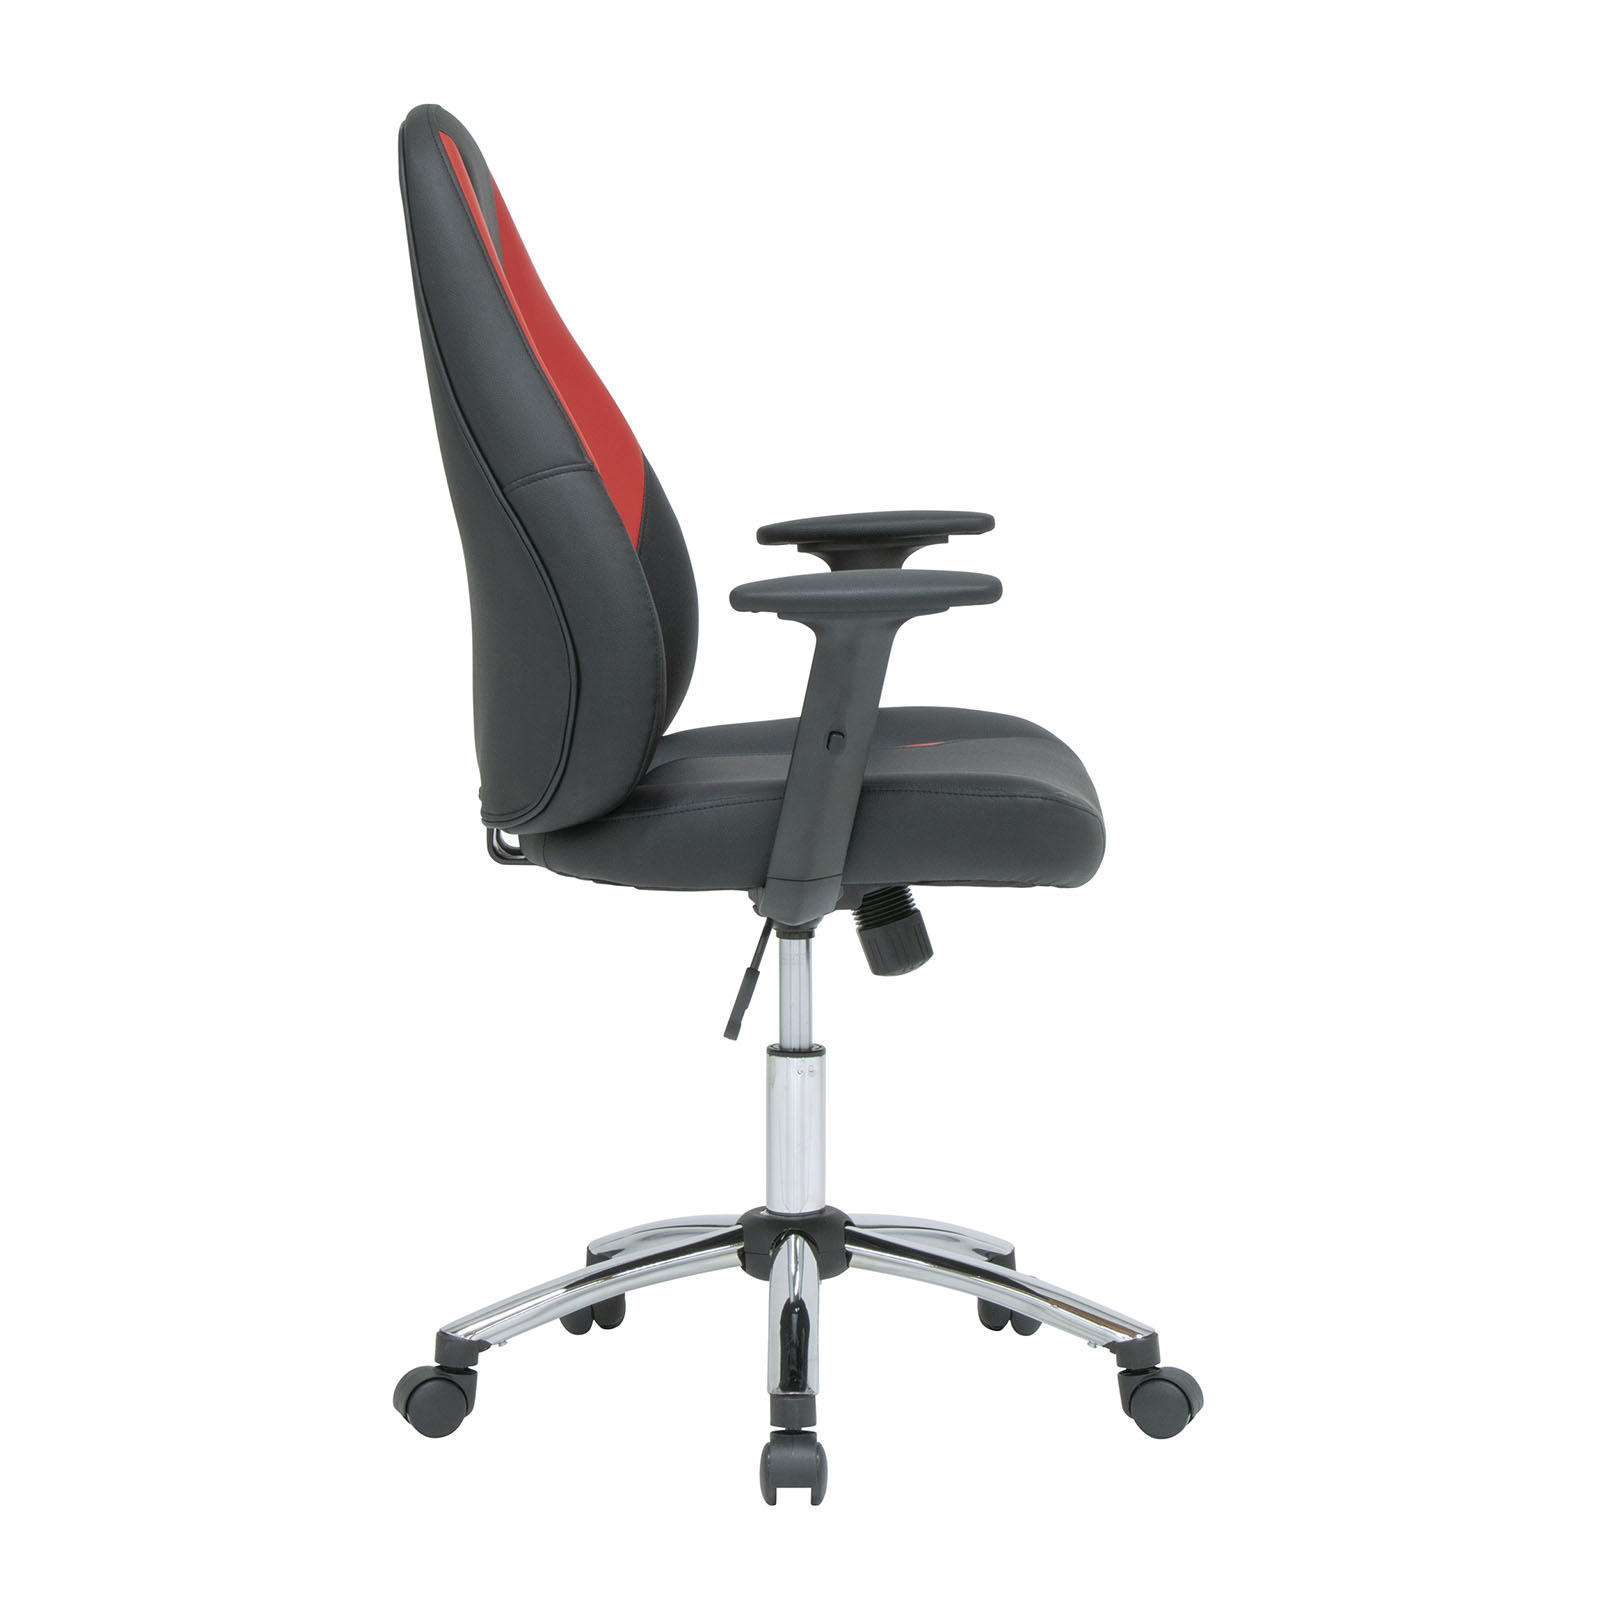 10661 Mid Back Gaming Chair side